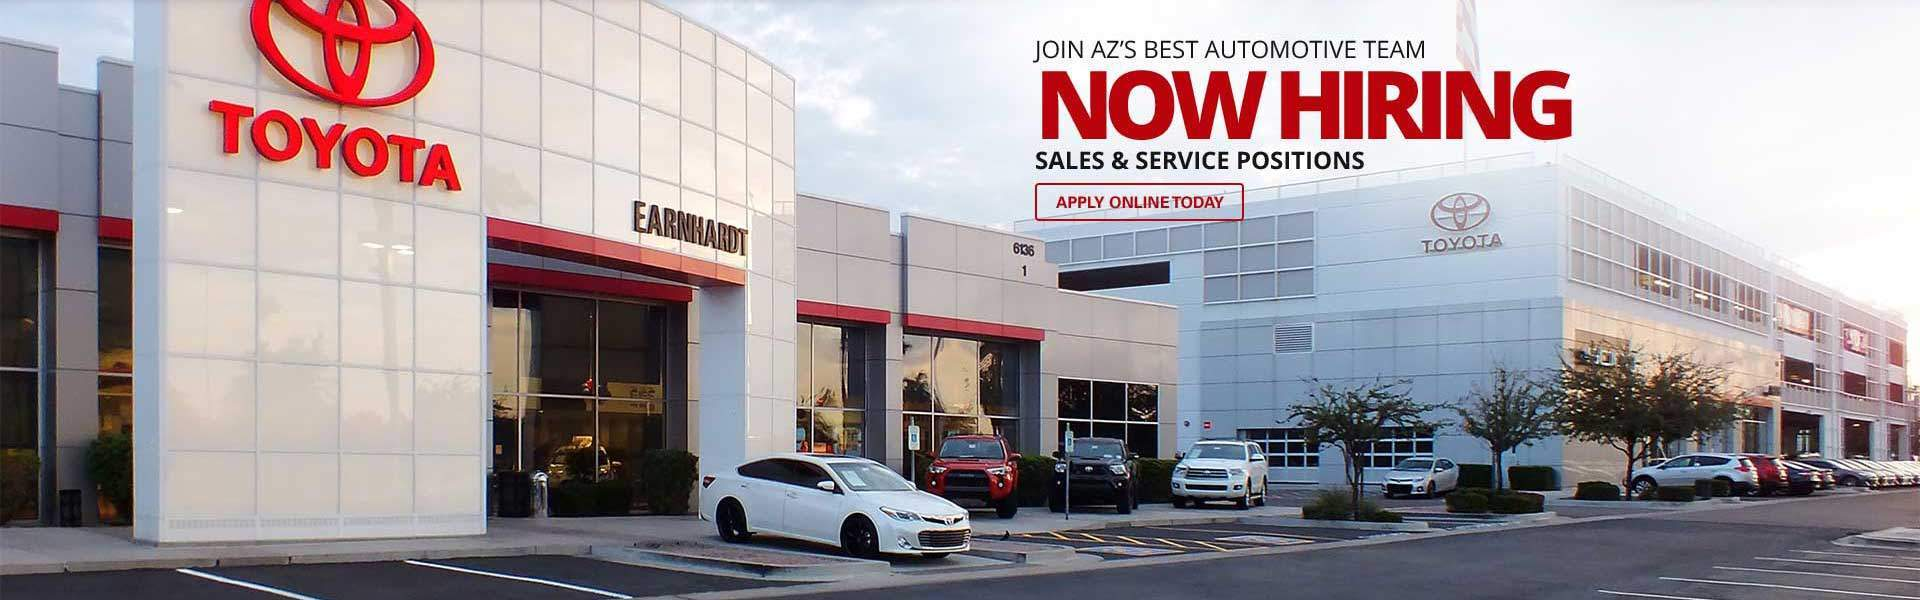 Earnhardt Toyota Dealer Mesa Az Serving Phoenix Scottsdale Tempe Mesa Chandler And Gilbert